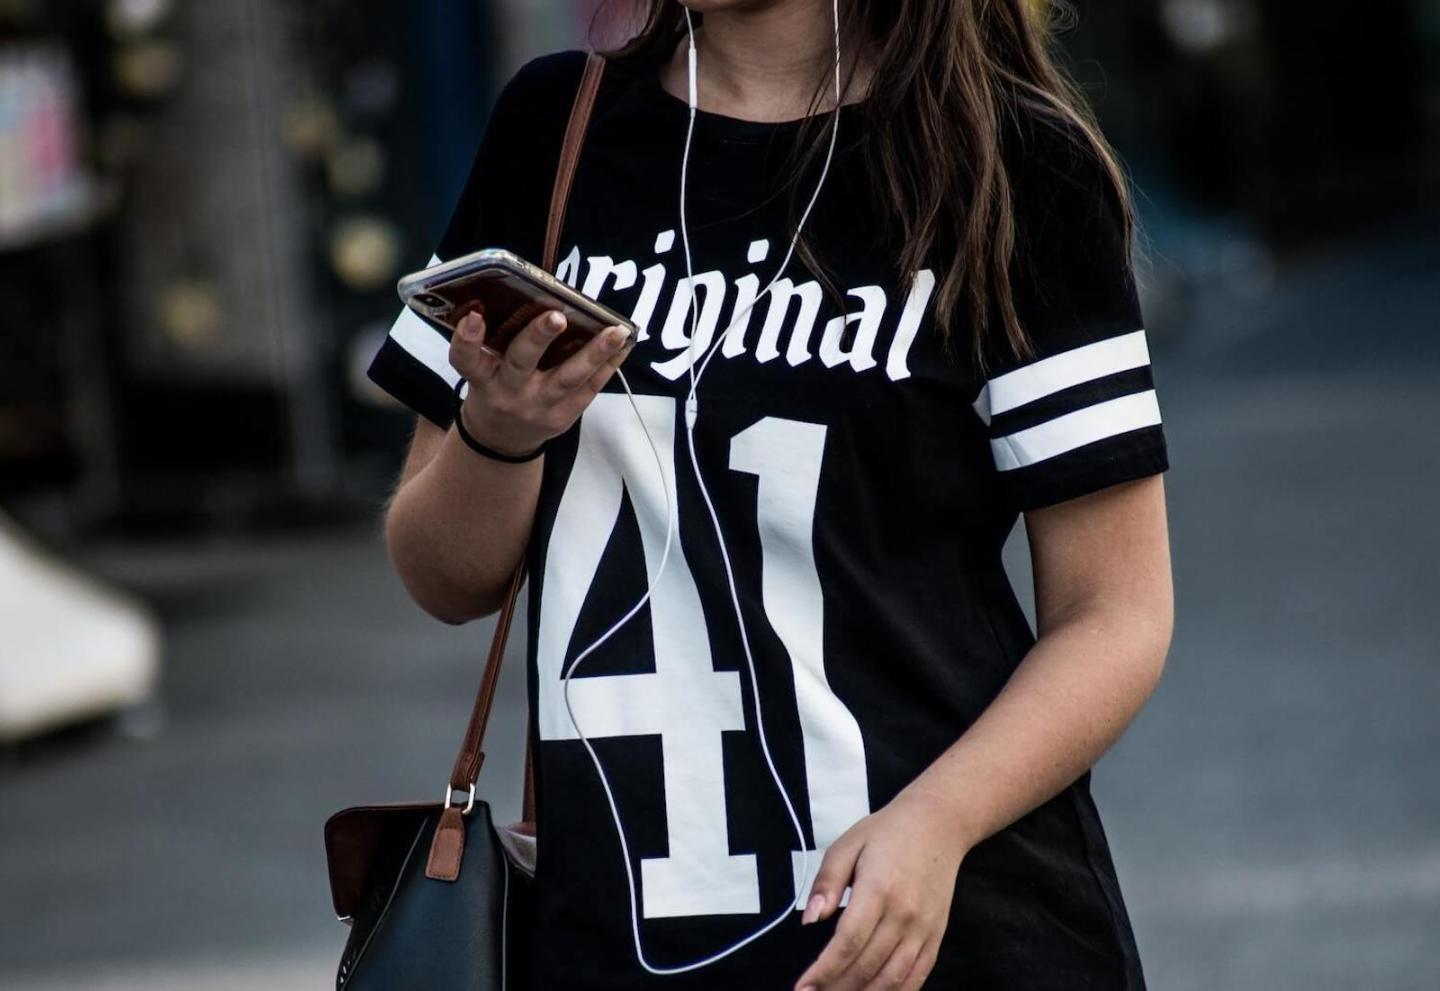 Image of woman walking using a phone with headphones - cropped from neck to waist to focus on the phone